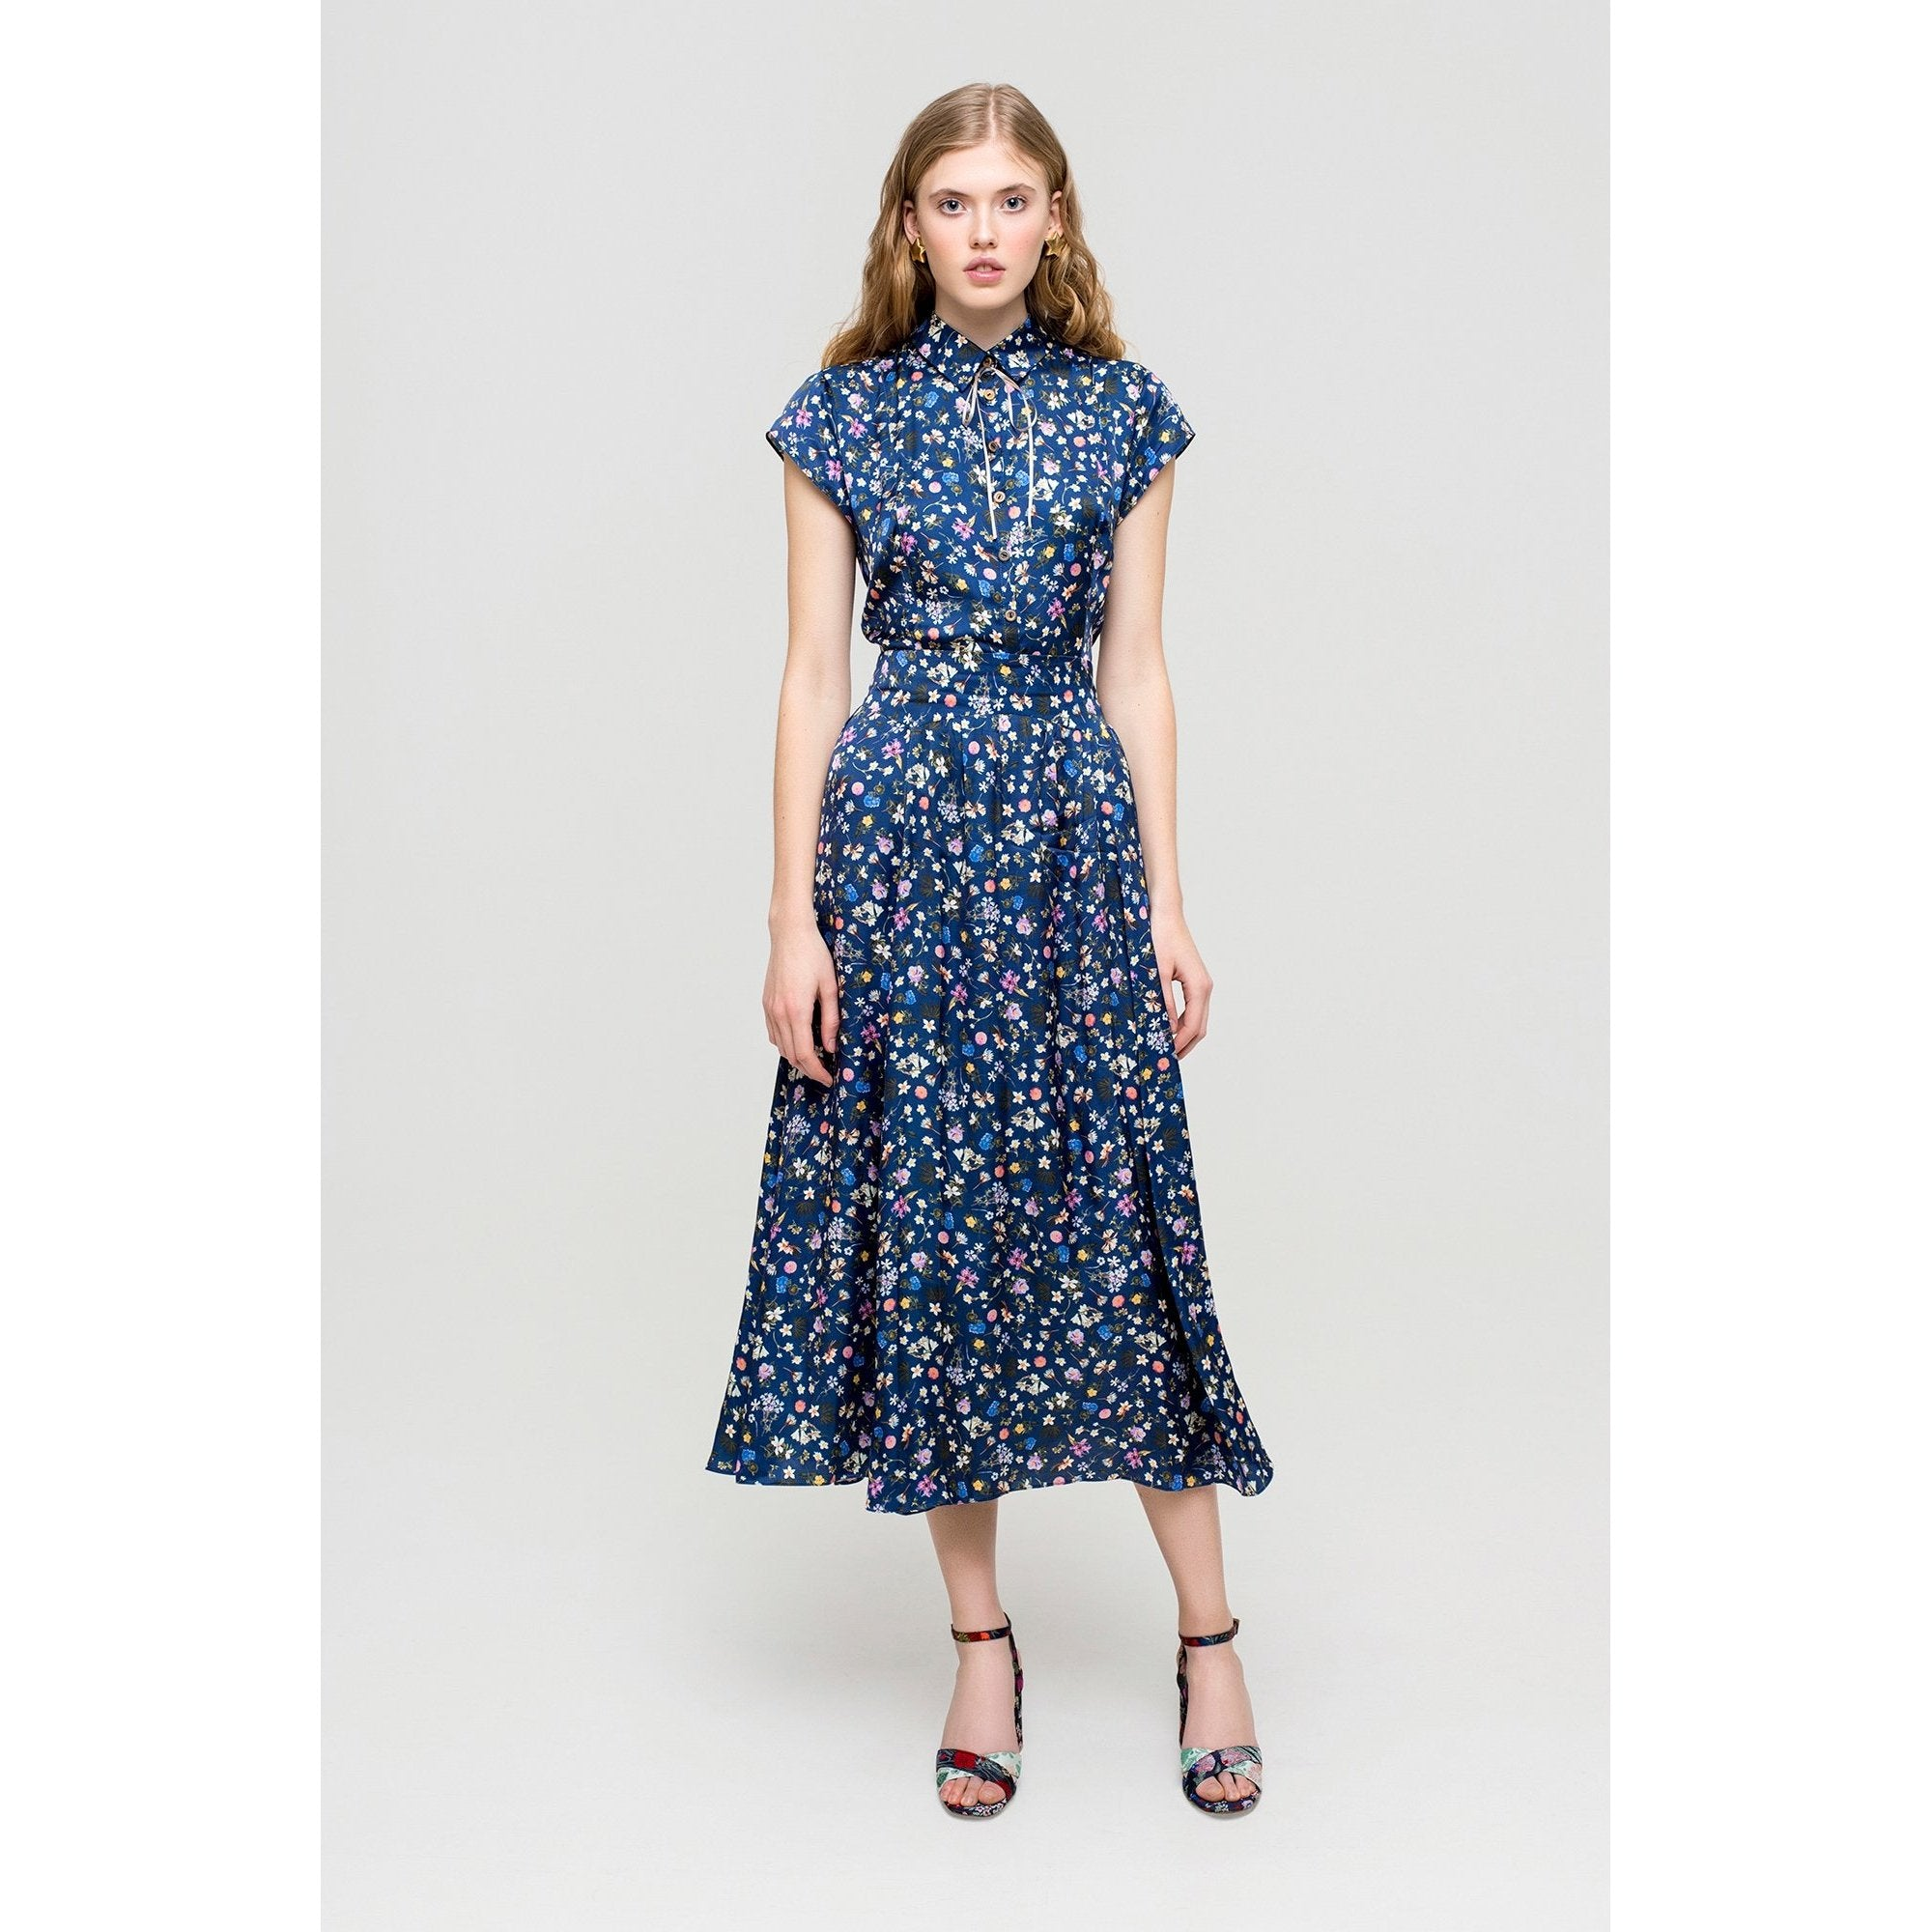 'Blue Layla' 40's Style Dress With Floral Pattern-OVER THE SEA-HOUSE of BOTTA